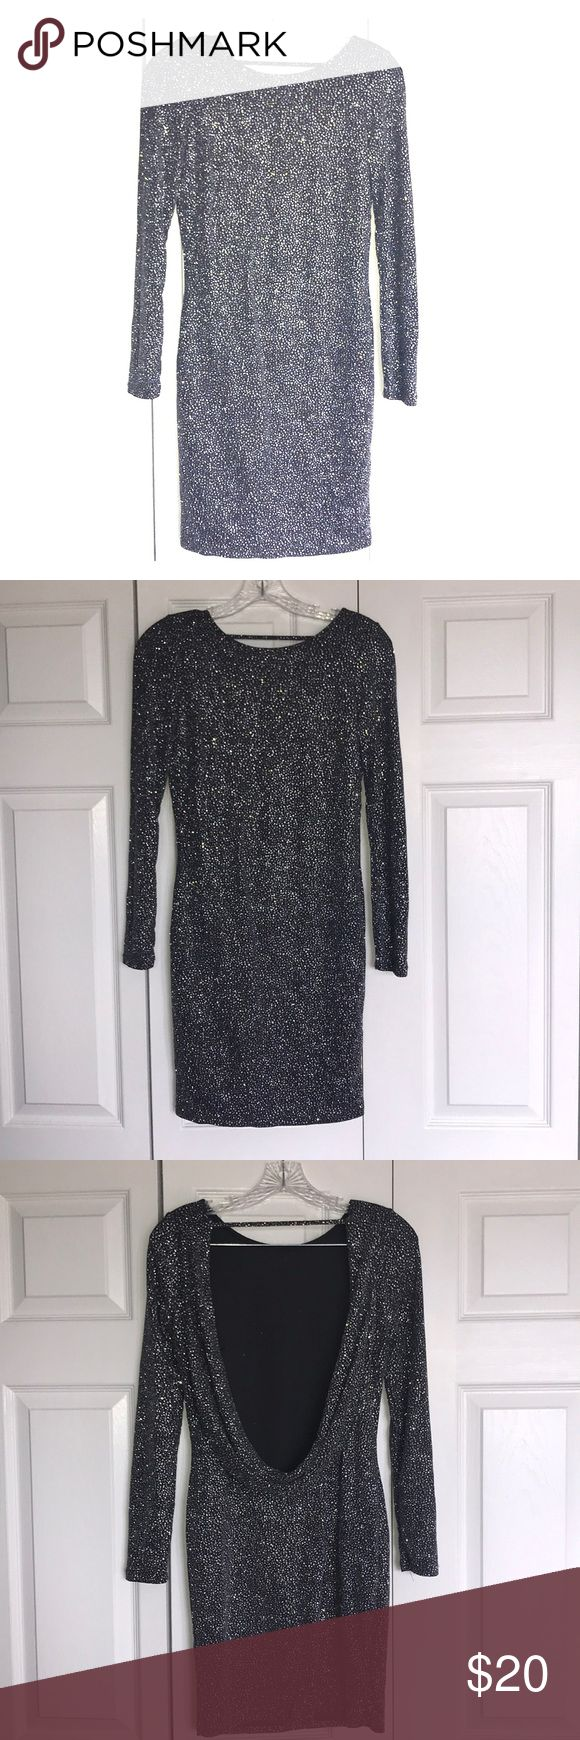 H&M Body Con Sparkle Dress with Low Back H&M Body Con Sparkle Dress with Low Back. Only worn once. Long sleeves. Strap across top of back to keep up. Gorgeous dress I just never had a reason to wear it. H&M Dresses Long Sleeve